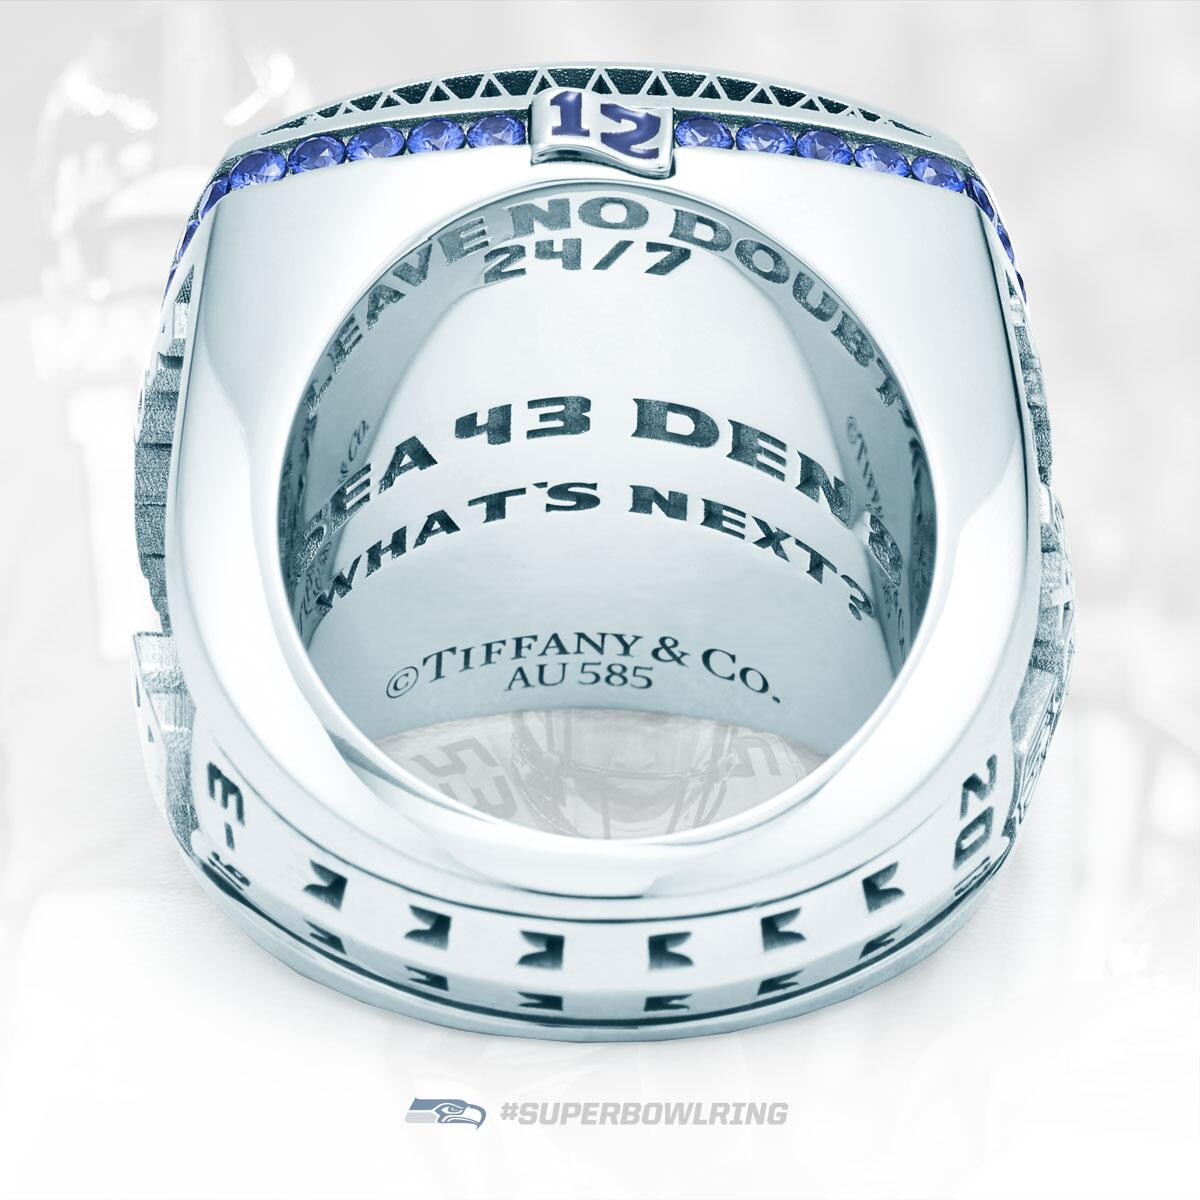 RT @PaulGAllen: @Seahawks #SuperBowlRing pays tribute to the #12s who were key to our #ChampionshipSeason. http://t.co/MmBzIomlov